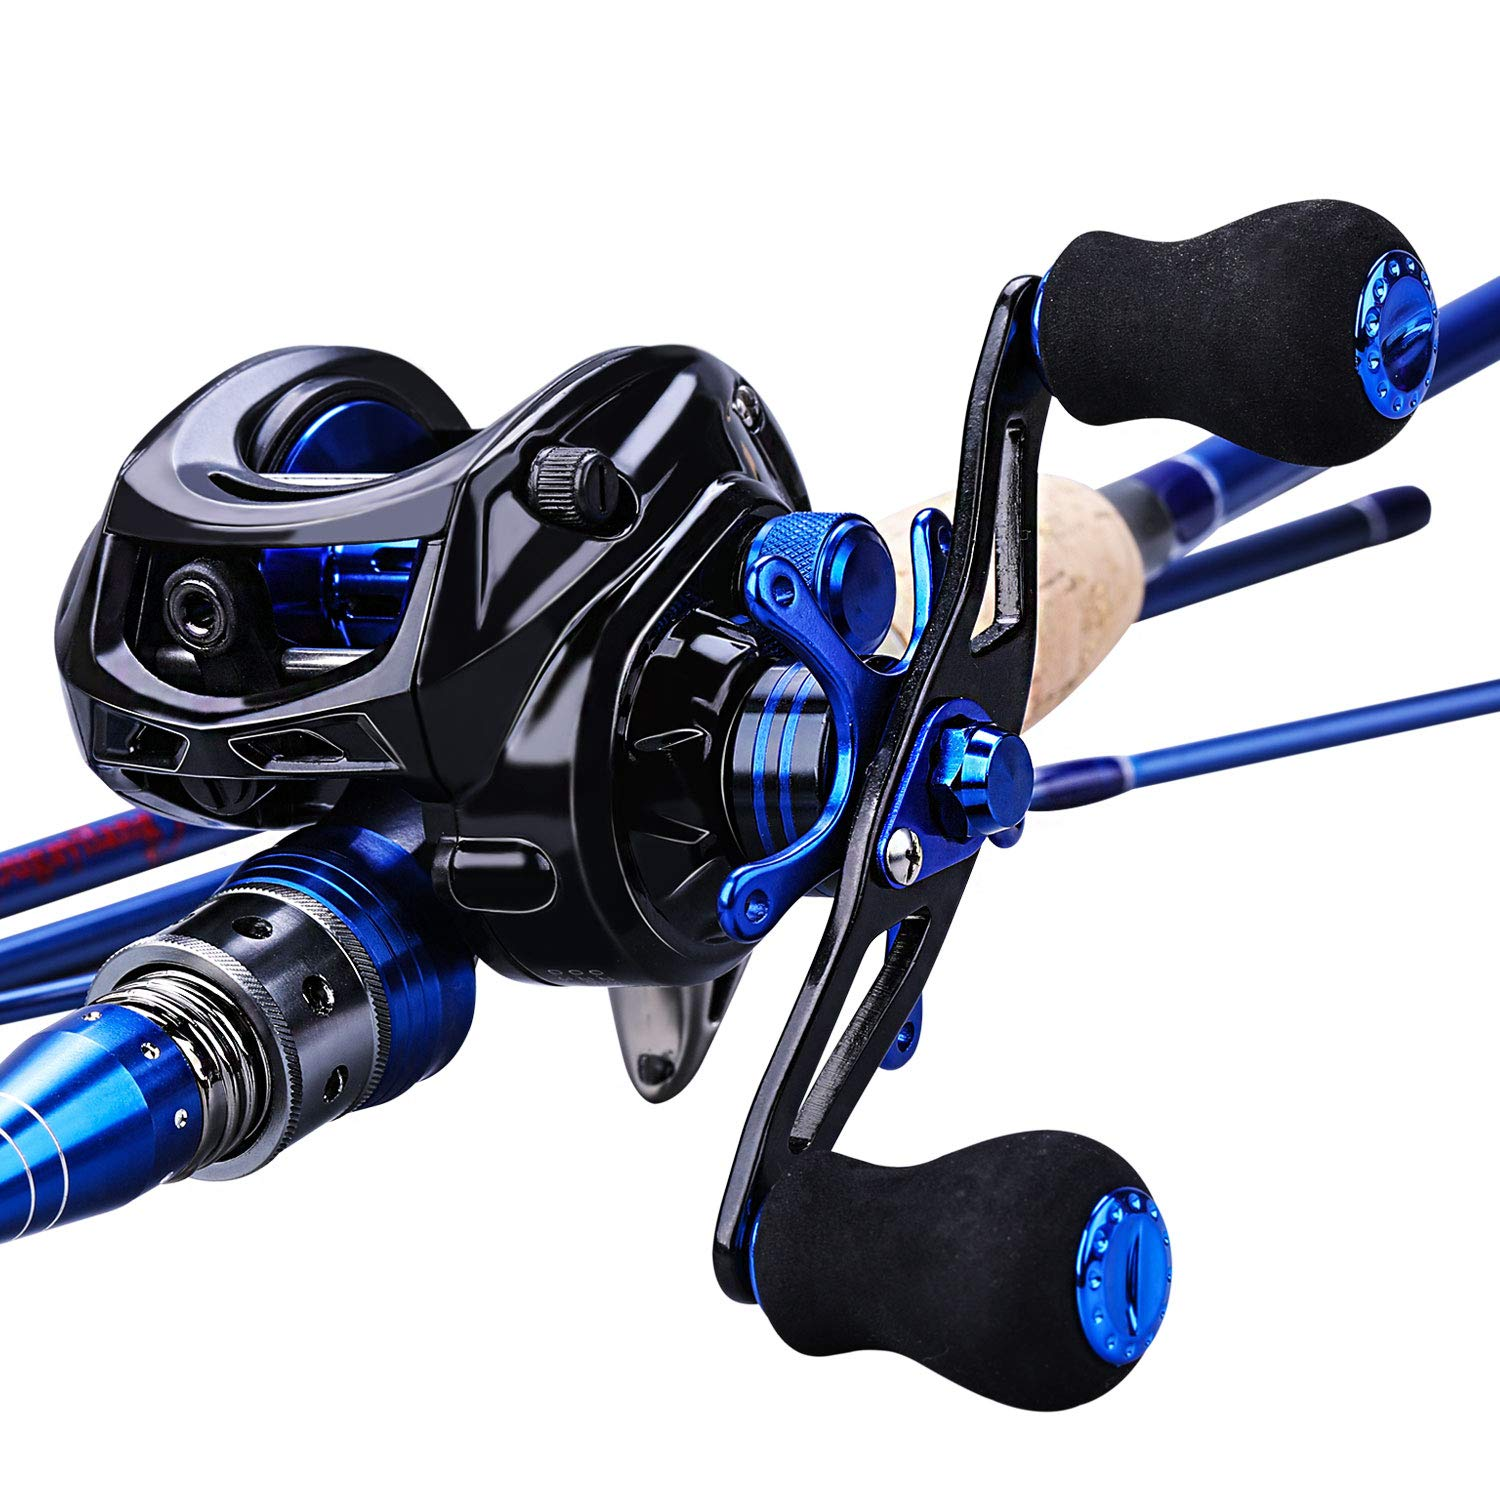 Sougayilang Fishing Baitcasting Combos, Lightweight Carbon Fiber Fishing Pole and 11 1BB Corrosion Resistant Bearings Fishing Reel-Right Left Hand for Travel 4-Piece Salt Fresh Water